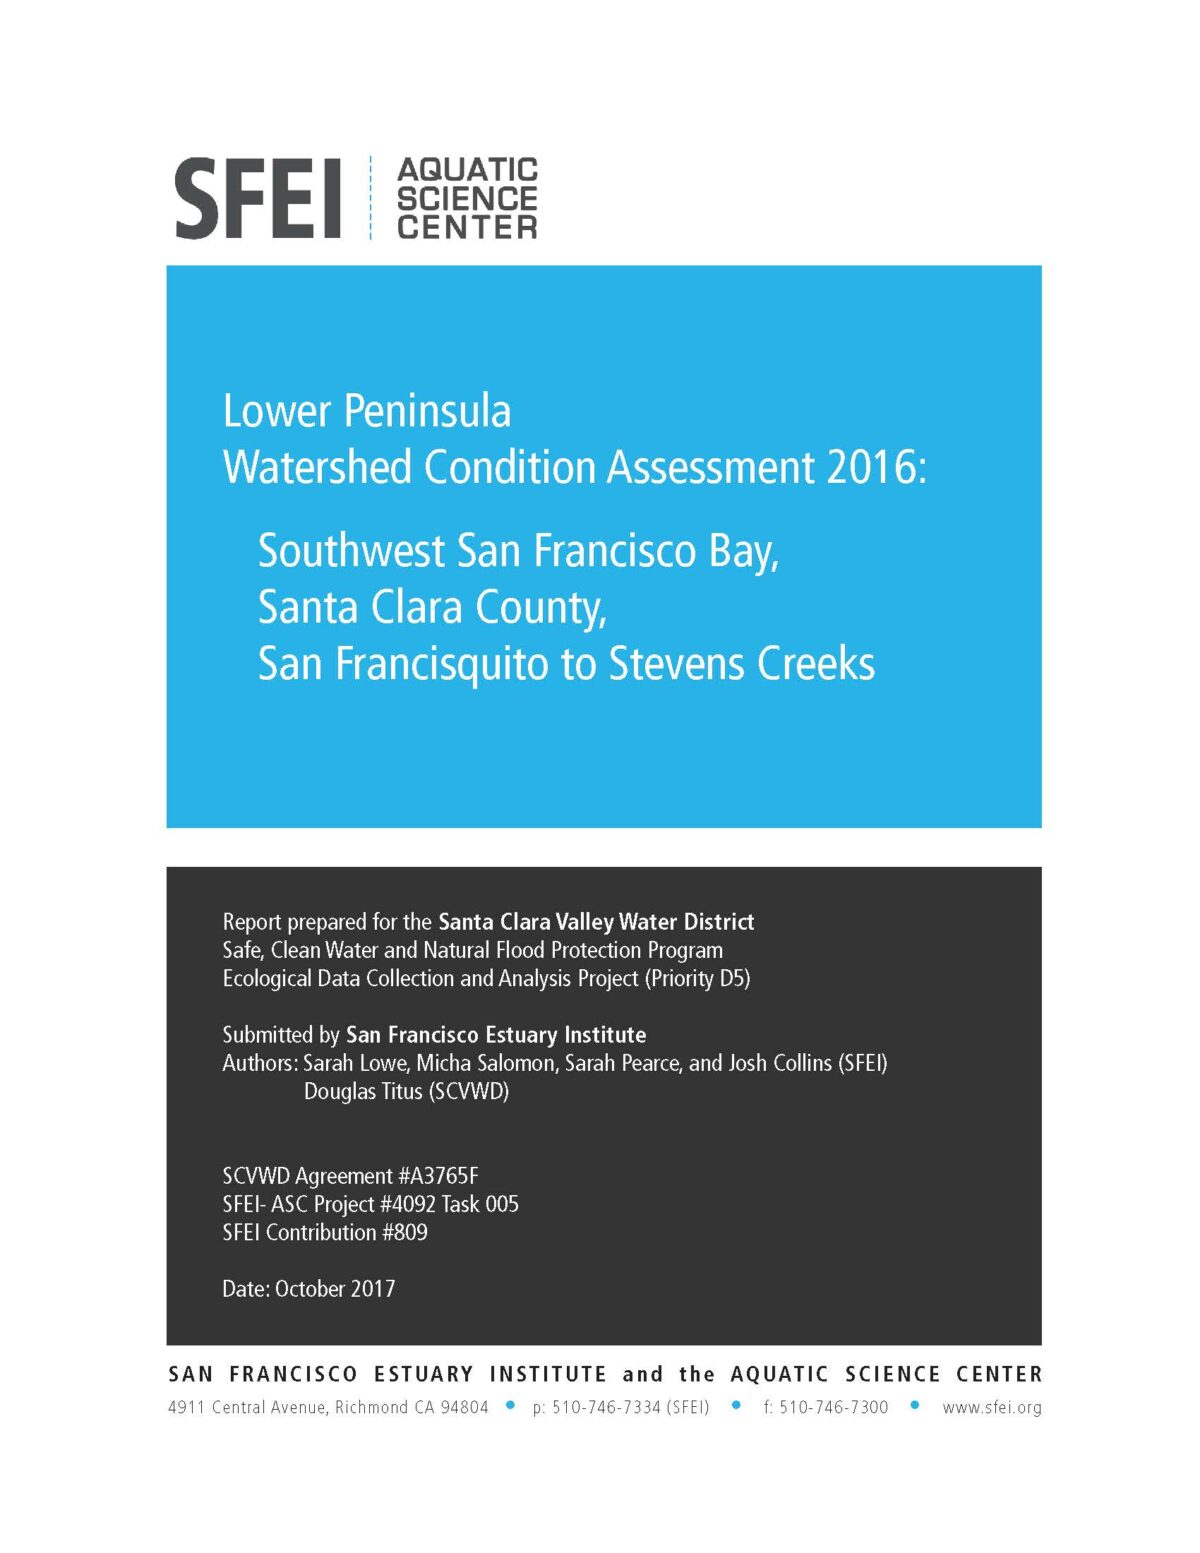 Lower Peninsula Watershed Condition Assessment 2016. Technical memorandum prepared for the Santa Clara Valley Water District – Priority D5 Project